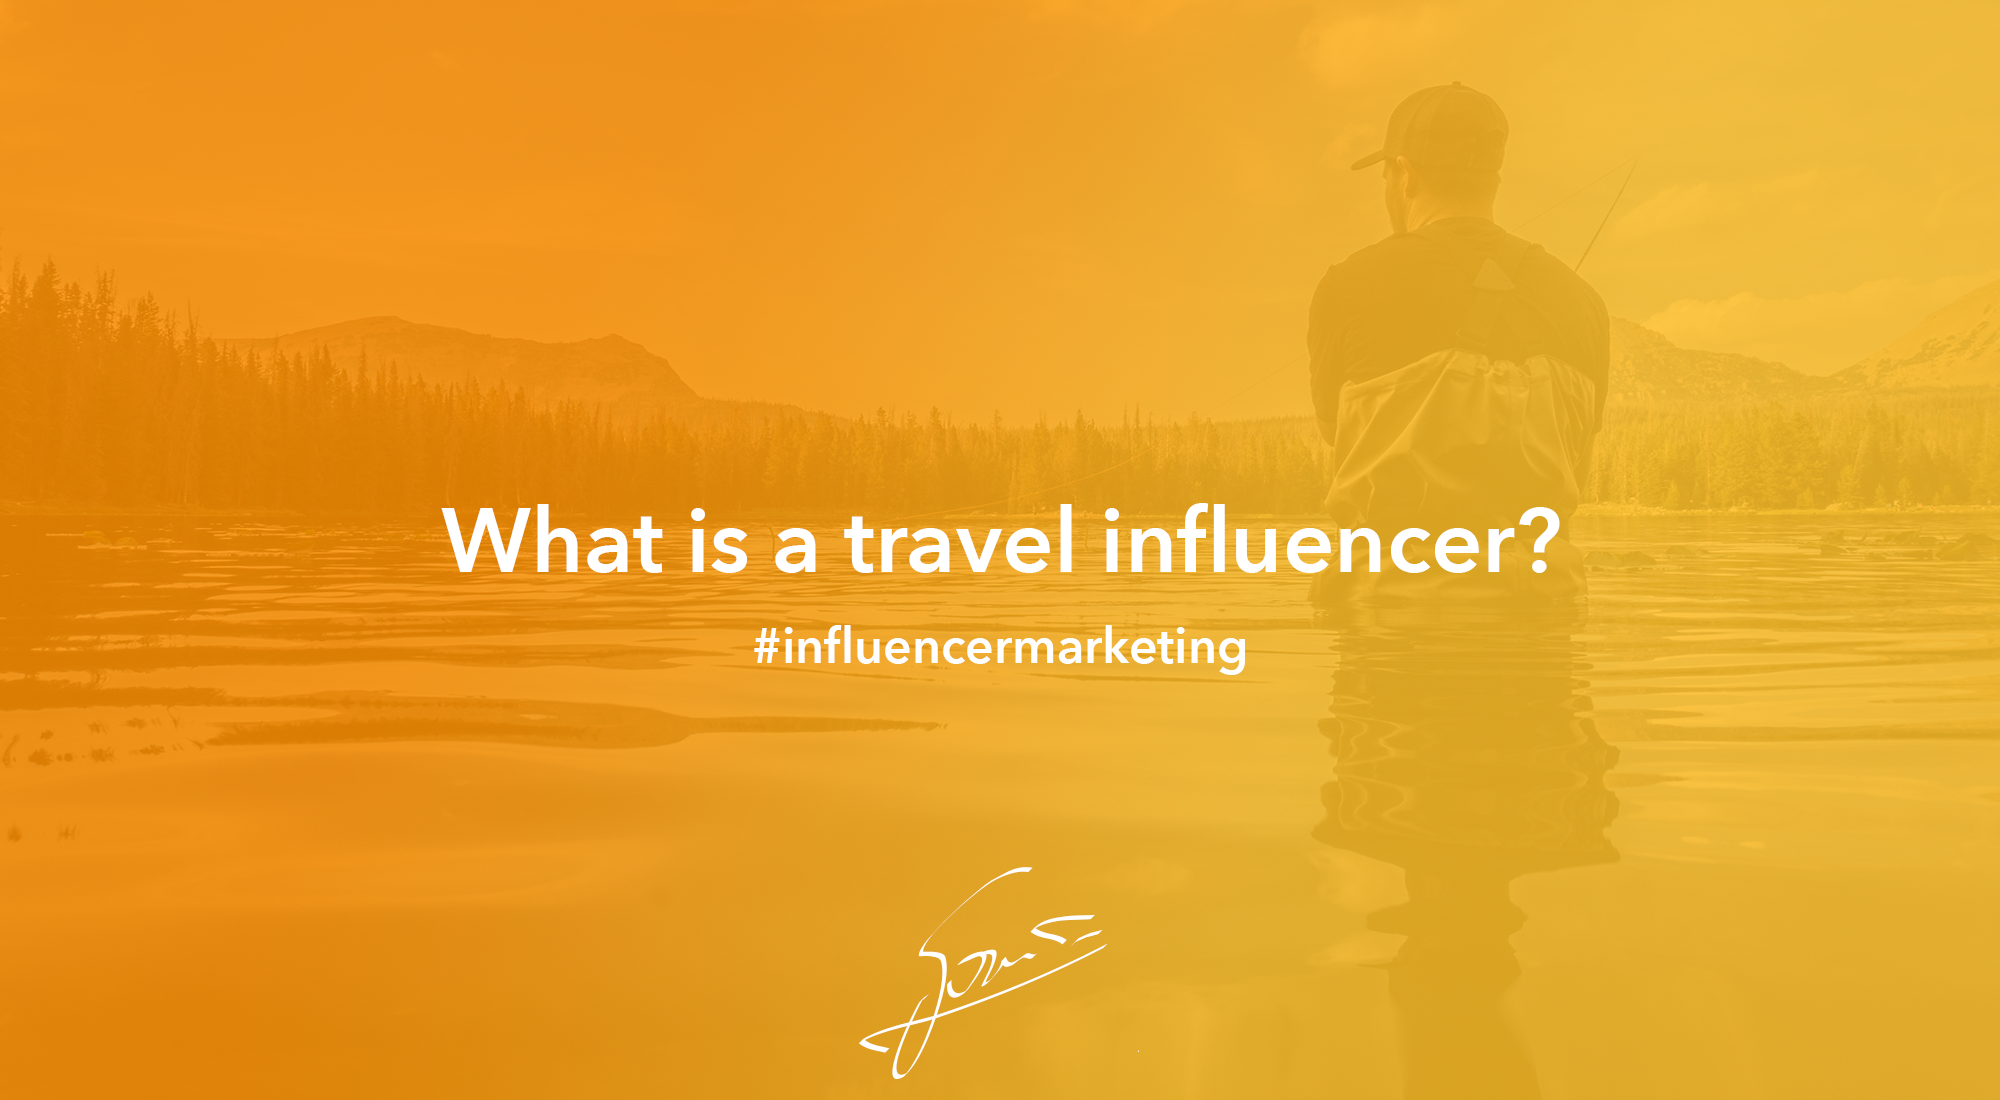 What is a Travel Influencer? - Quora